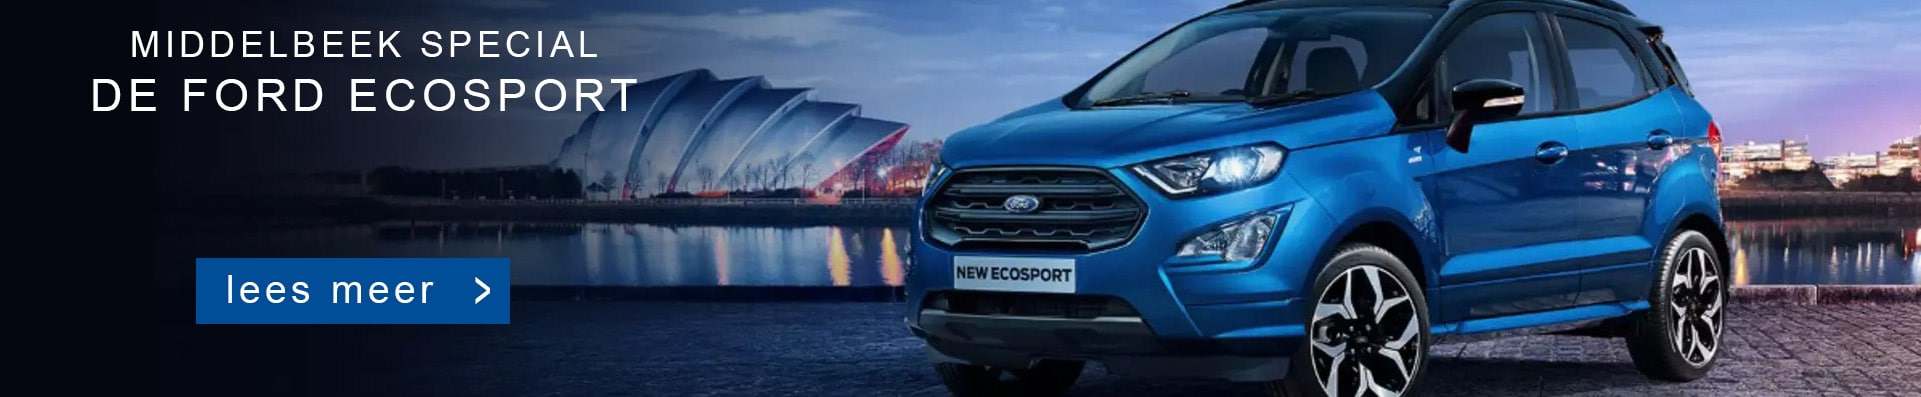 lease-middelbeek-ecosport